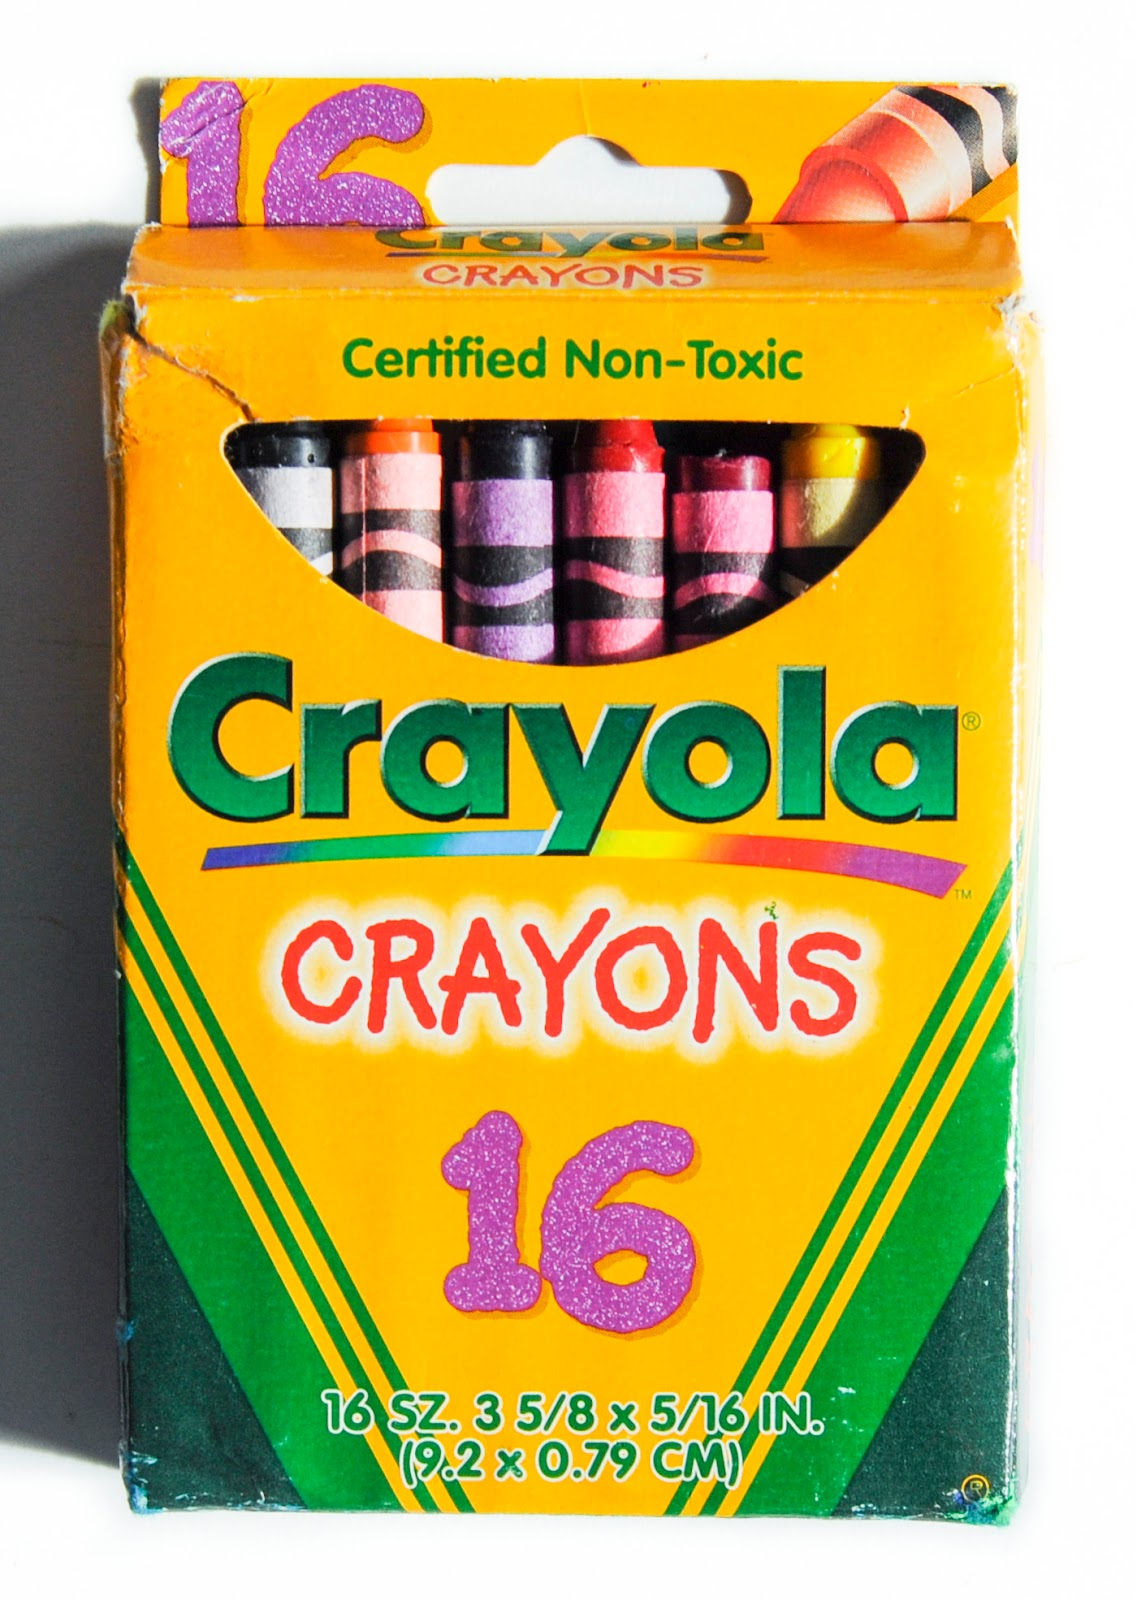 the history of crayola crayons Since the introduction of crayola drawing crayons by binney & smith in 1903, more than two hundred distinctive colors have been produced in a wide variety of assortments.